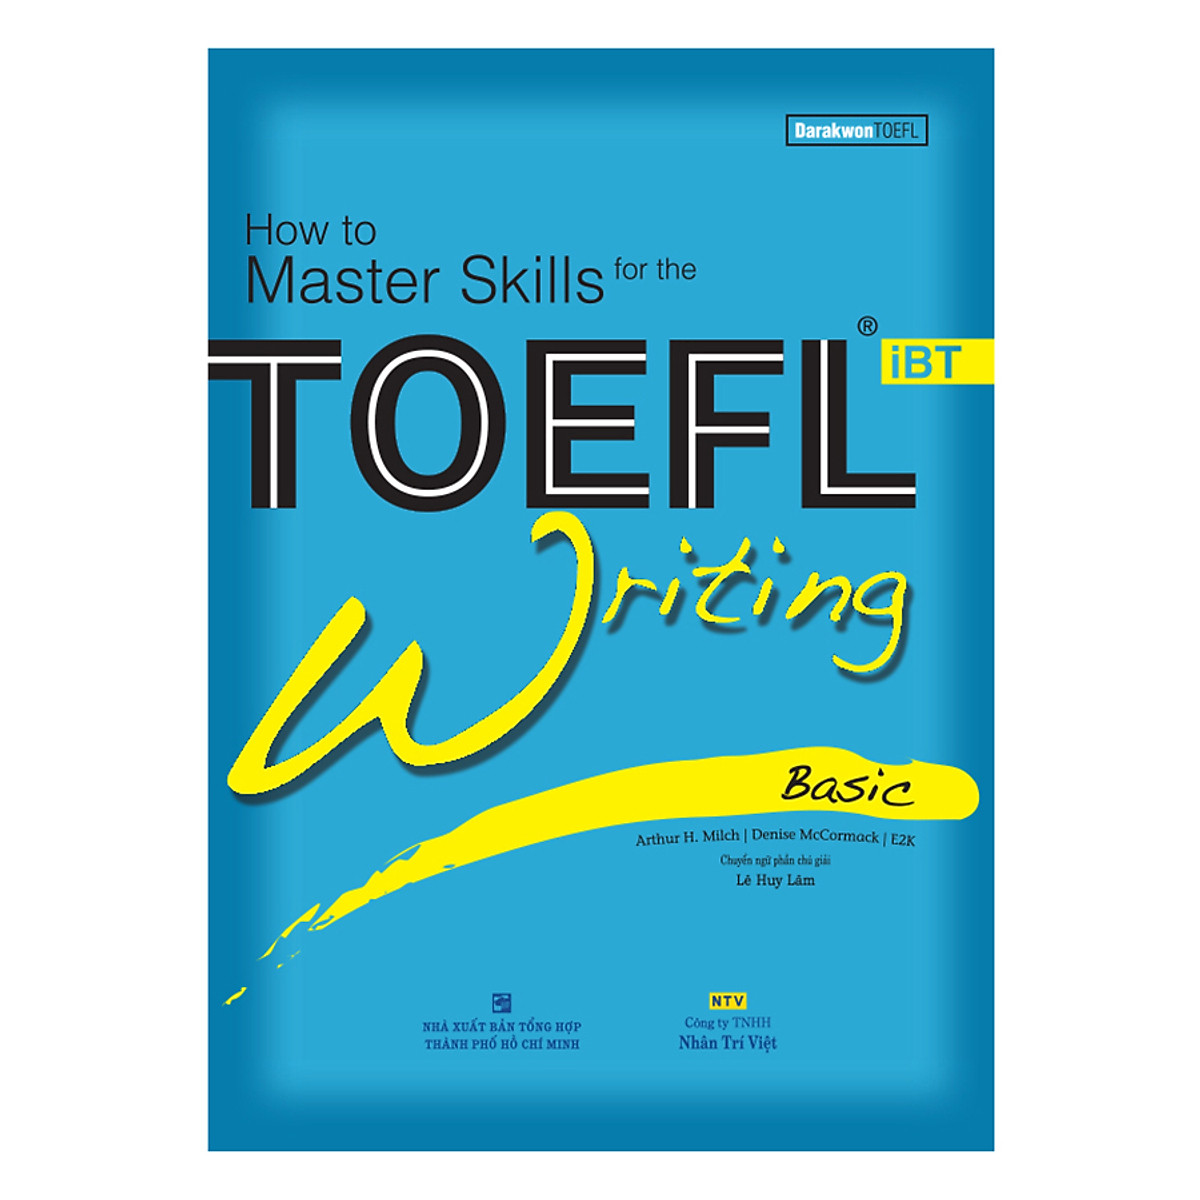 how to improve writing skills in toefl ibt How do i improve toefl writing sarah s what follows below is a general set of recommendations to improve your writing skills :) practice writing english every day.